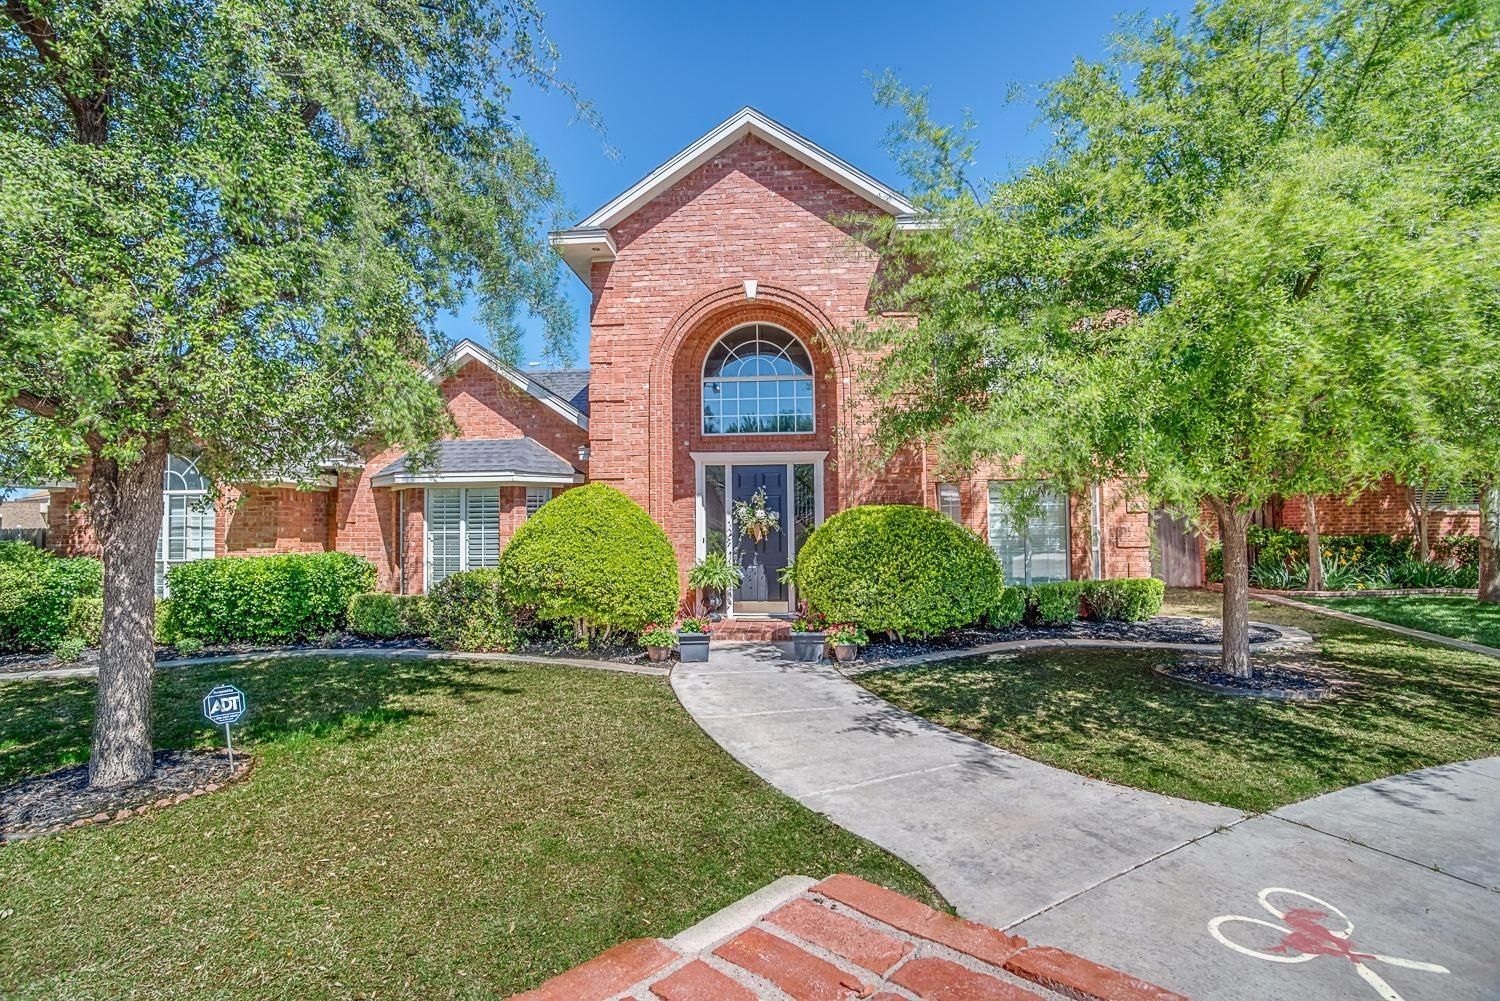 5114 97th lubbock tx property details lubbock real